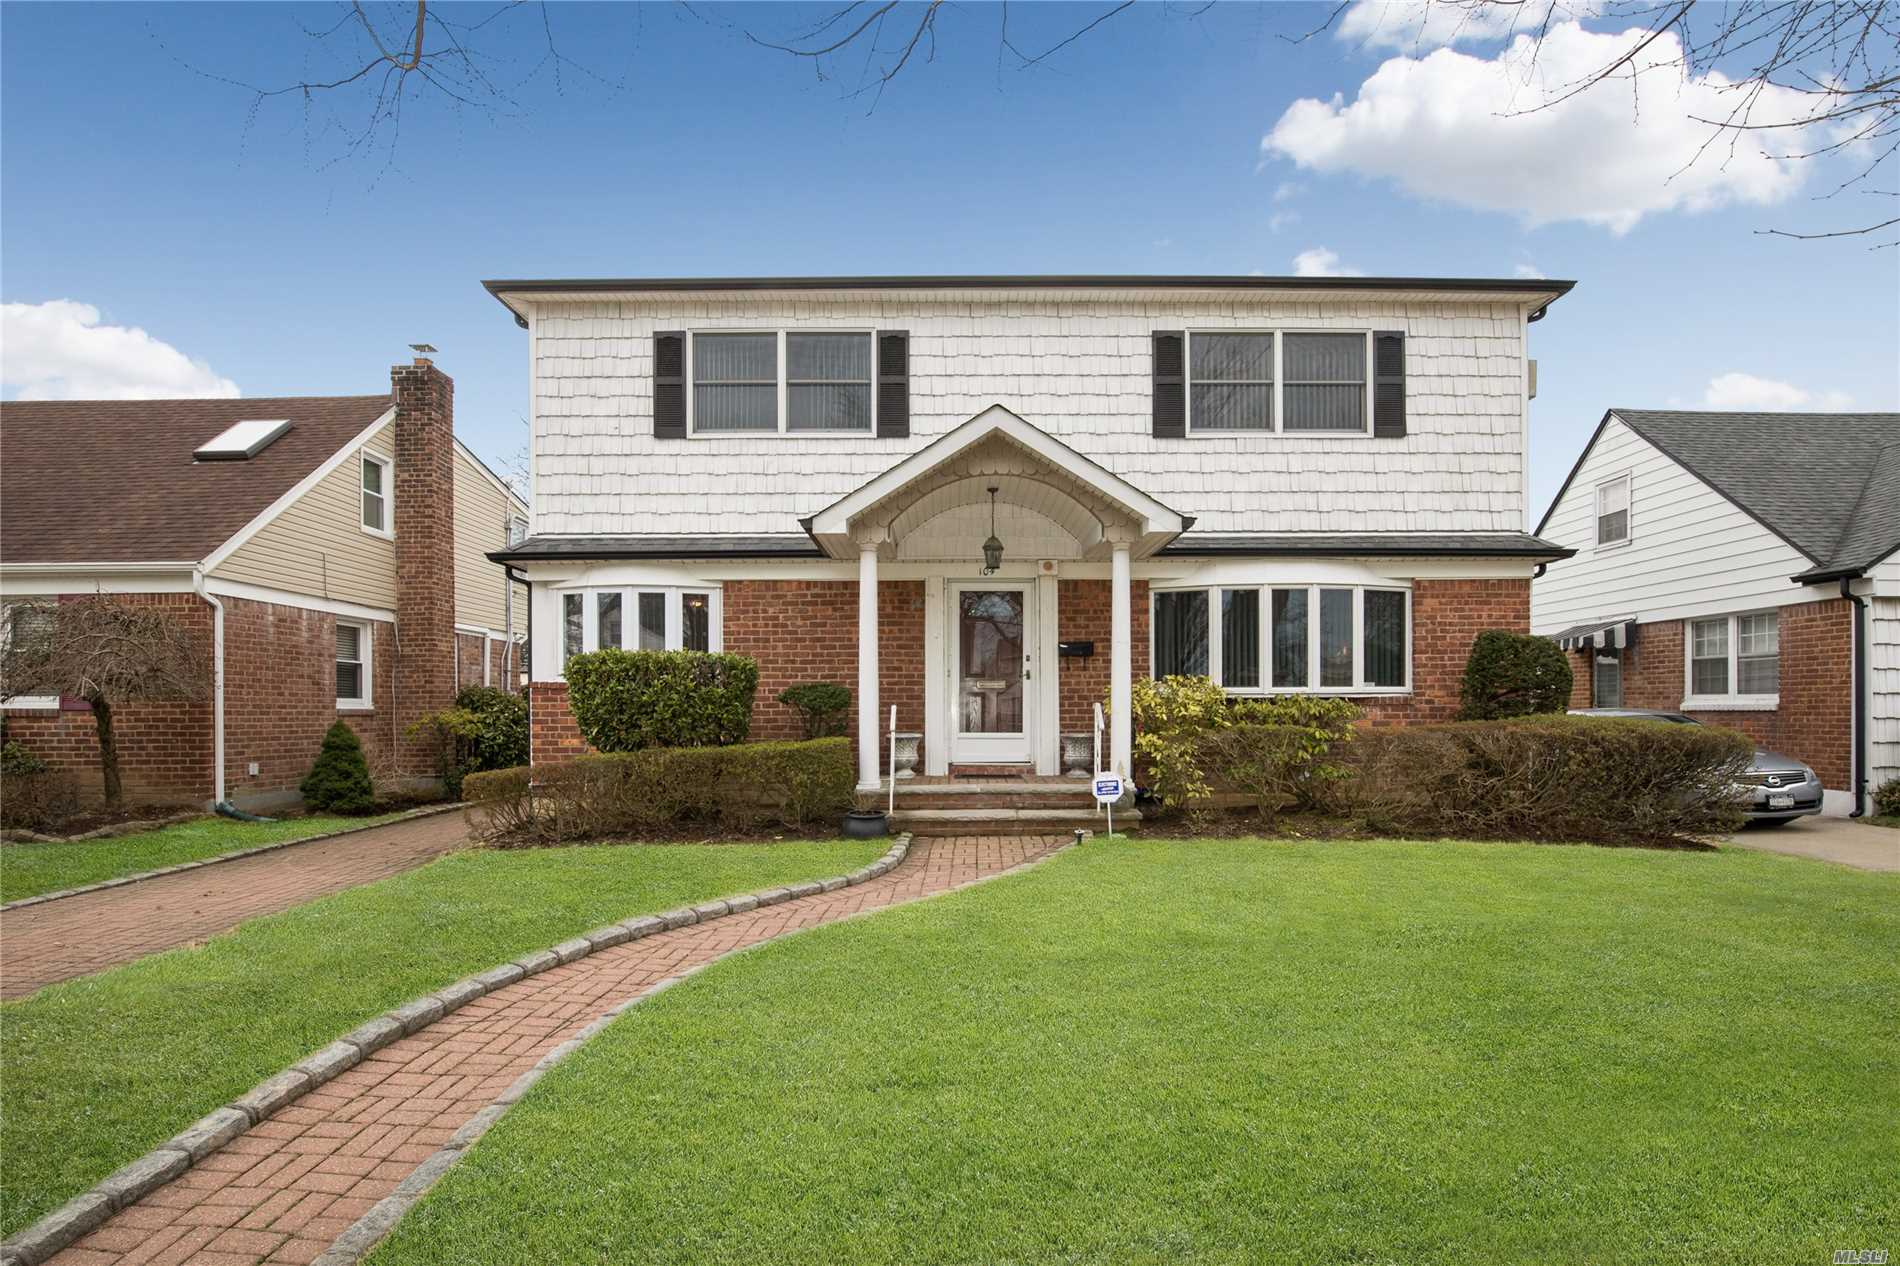 Majestic Colonial in the Manor! This Sprawling Colonial Offers Spacious Rooms With Oversized Formal Dining Room, 5 Bedrooms and a Large Oak Eat-In Kitchen. Enclosed Rear Porch Leads To Private Yard With Brick Driveway!